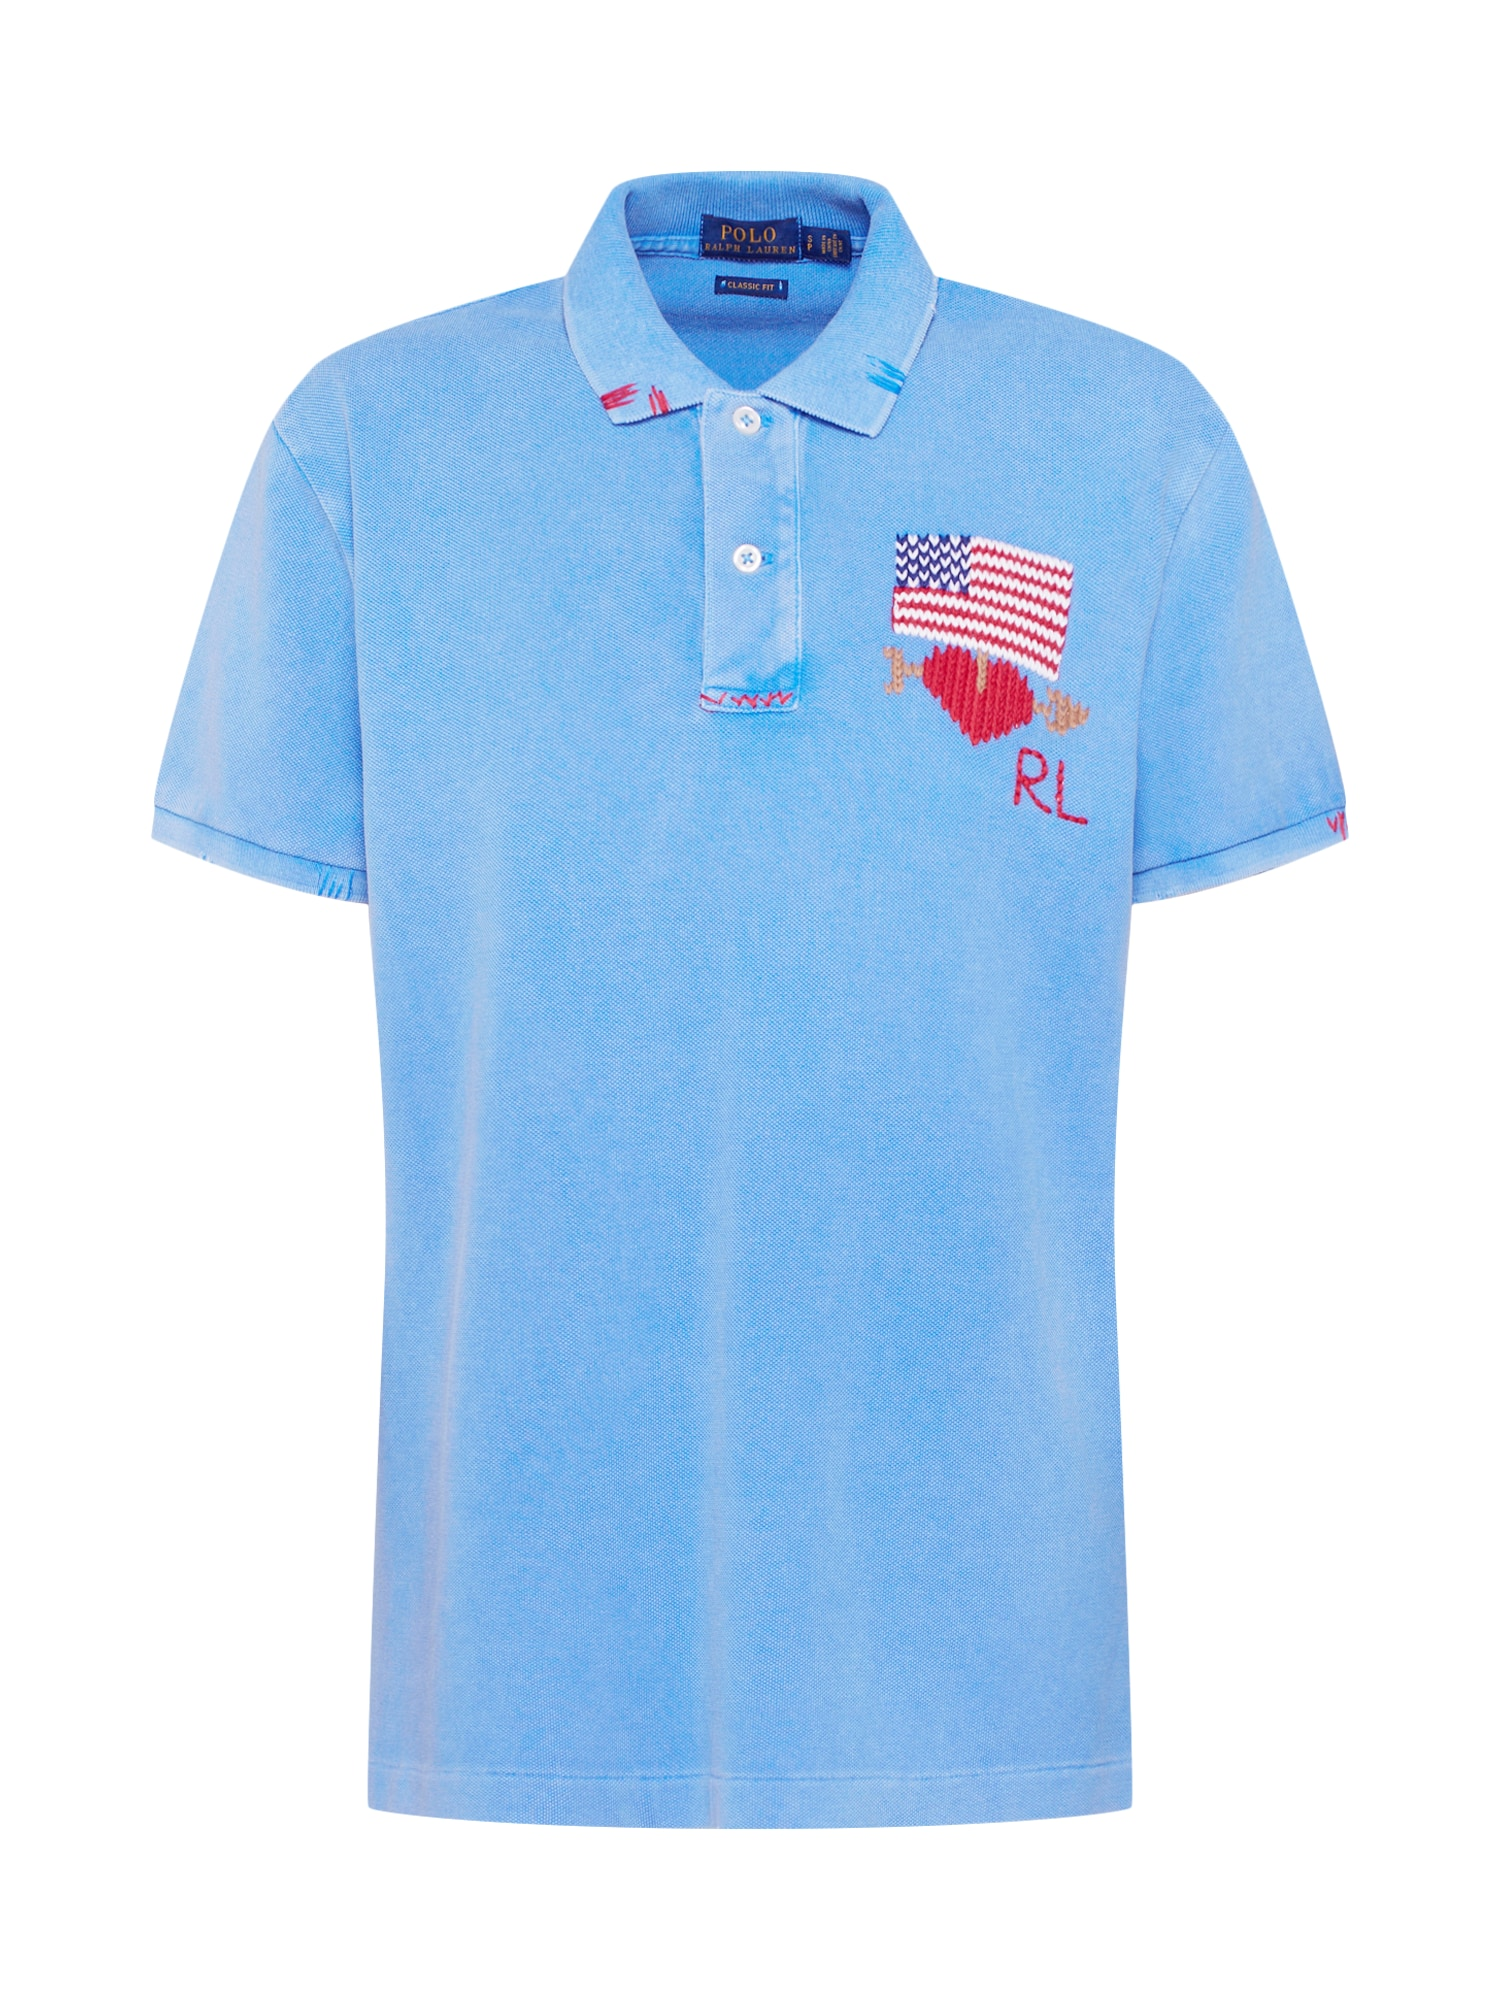 Tričko CL FIT W FLG-SHORT SLEEVE-KNIT modrá POLO RALPH LAUREN